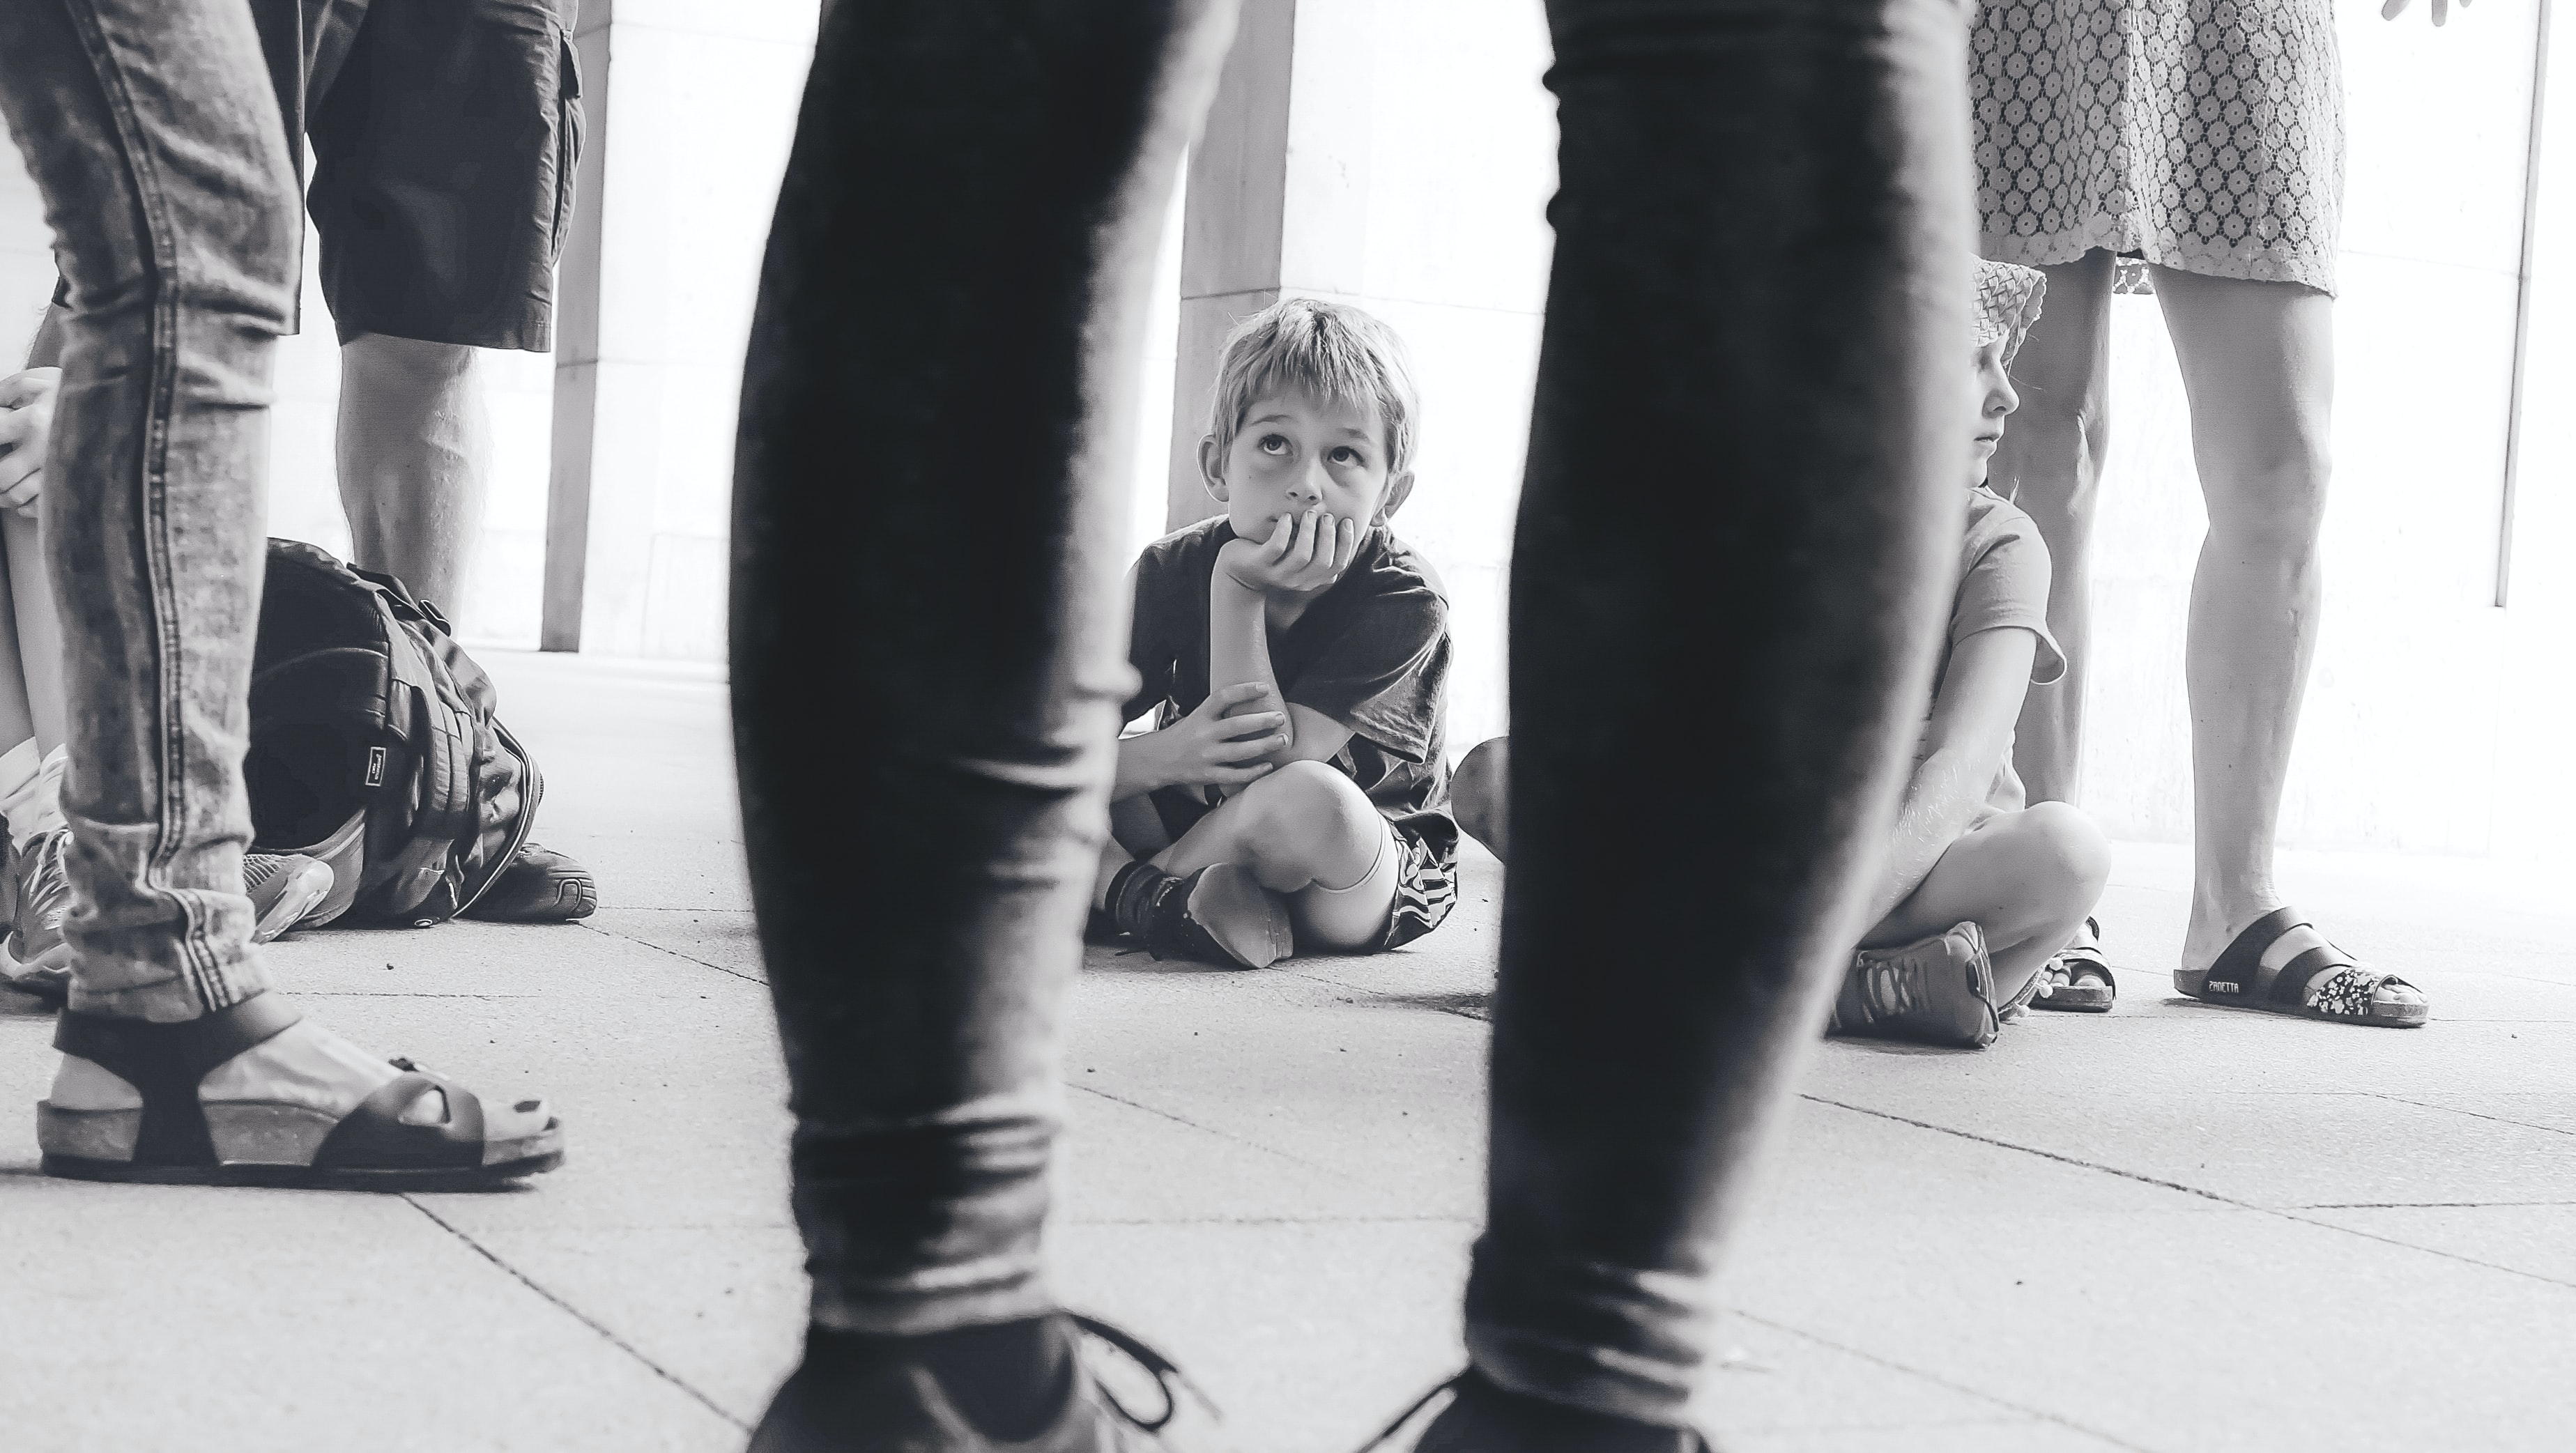 grayscale photography of boy sitting on the floor watching the person in front of him